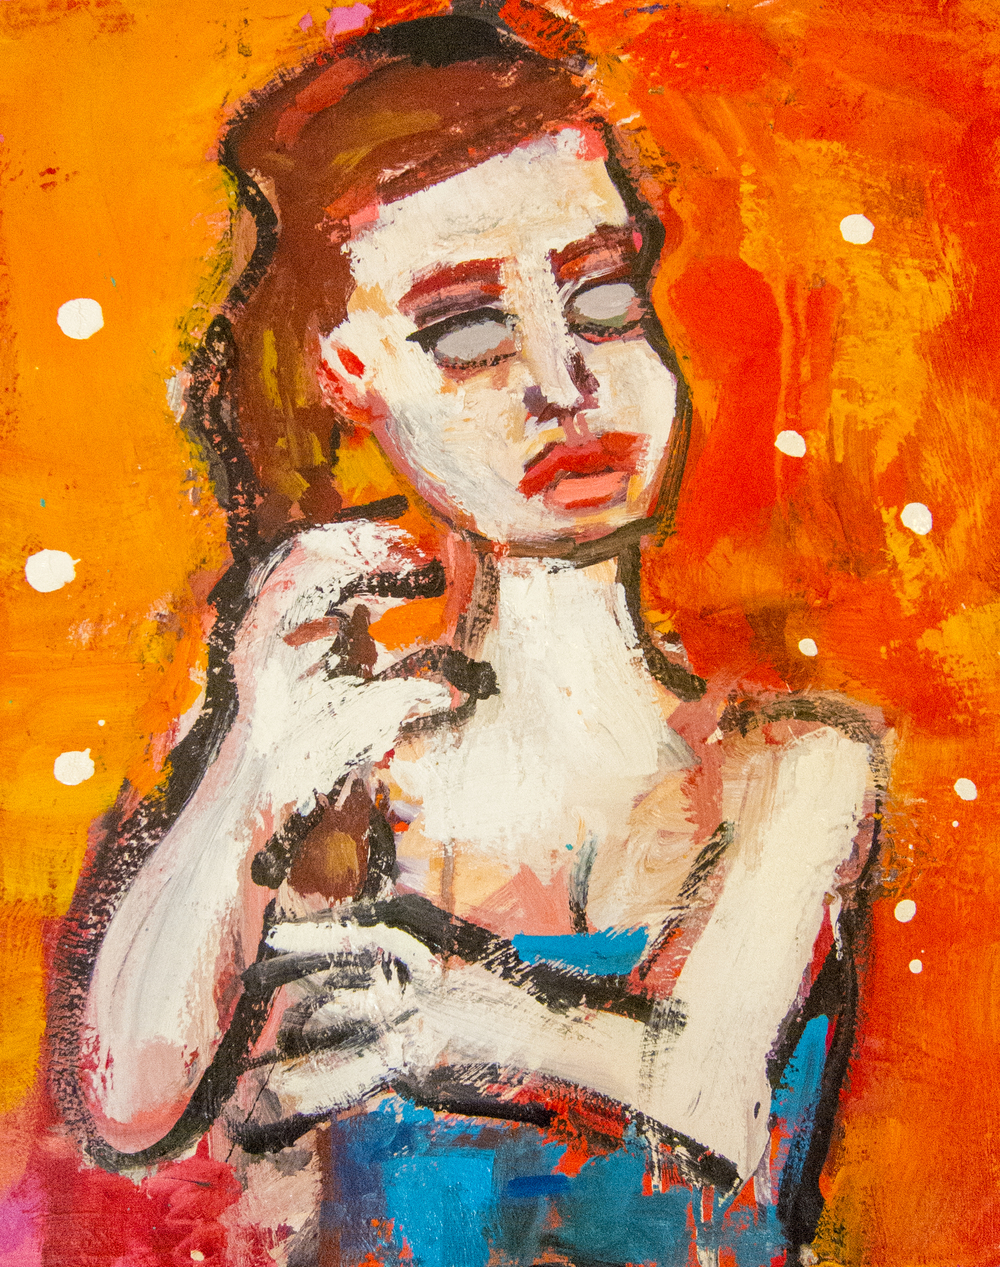 Woman With Orange Background by Greg Kessler